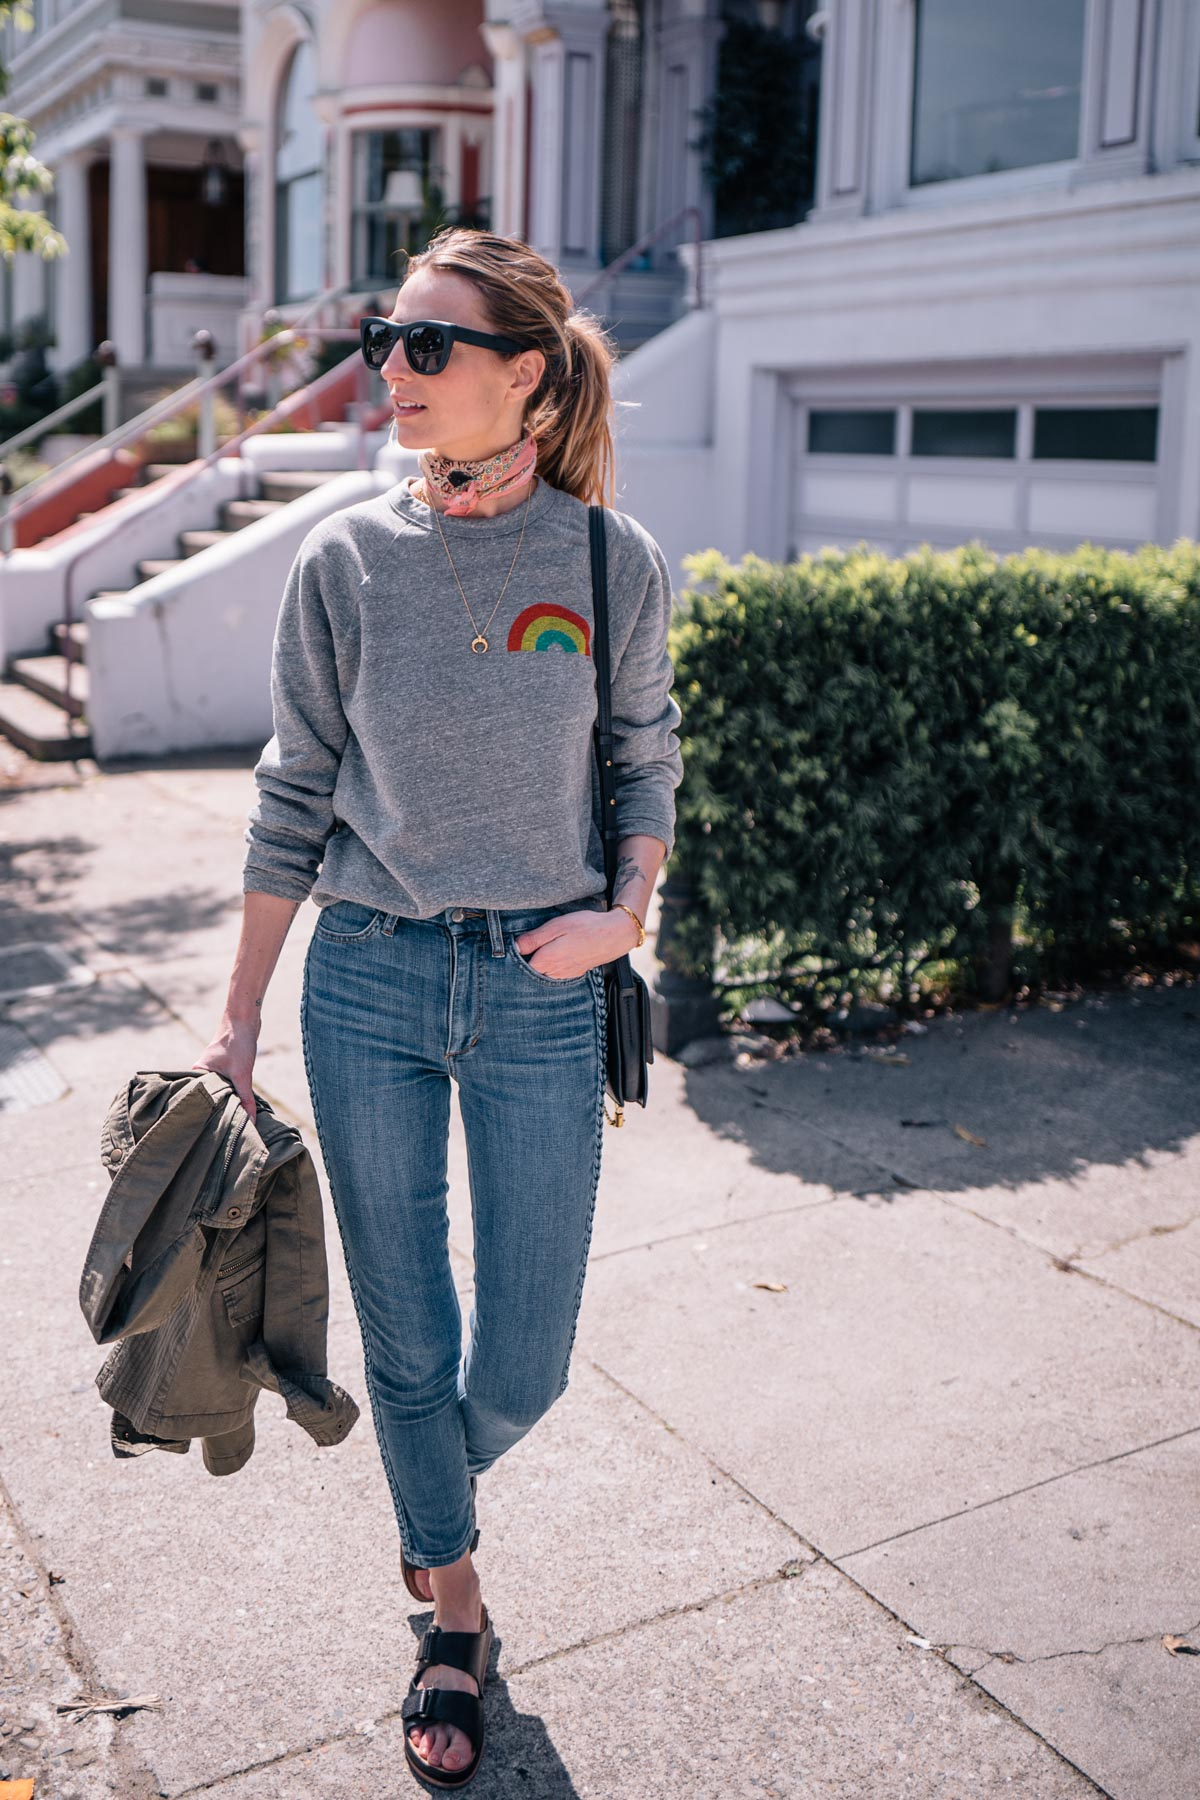 Jess Ann Kirby wears a casual look in San Francisco with Joes Jeans and a Culk sweatshirt